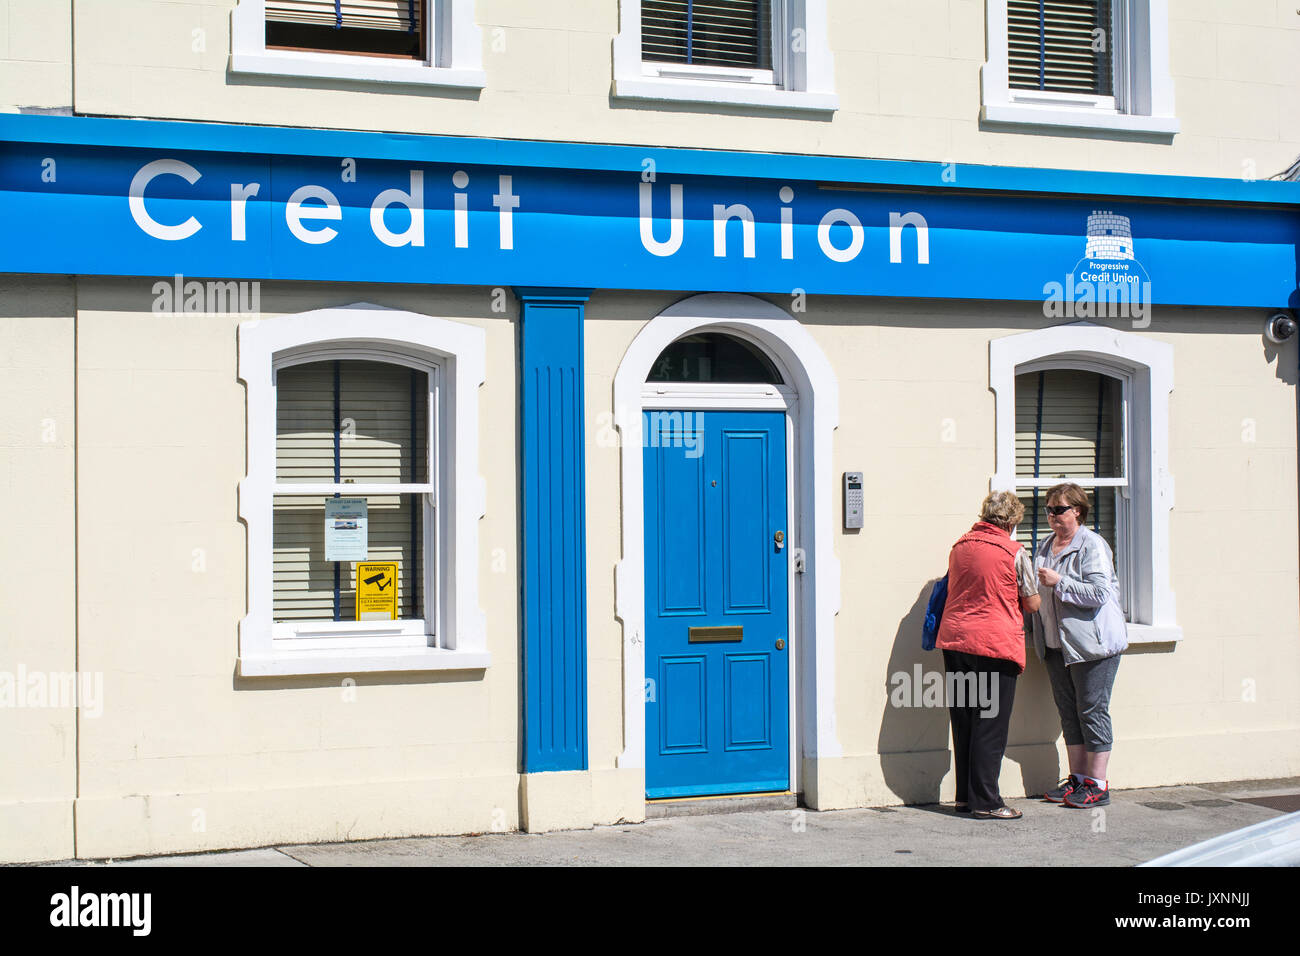 The Credit Union offices in Skerries, co.Dublin, Ireland. Credit Unions are local savings banks owned and run by their members in Ireland - Stock Image